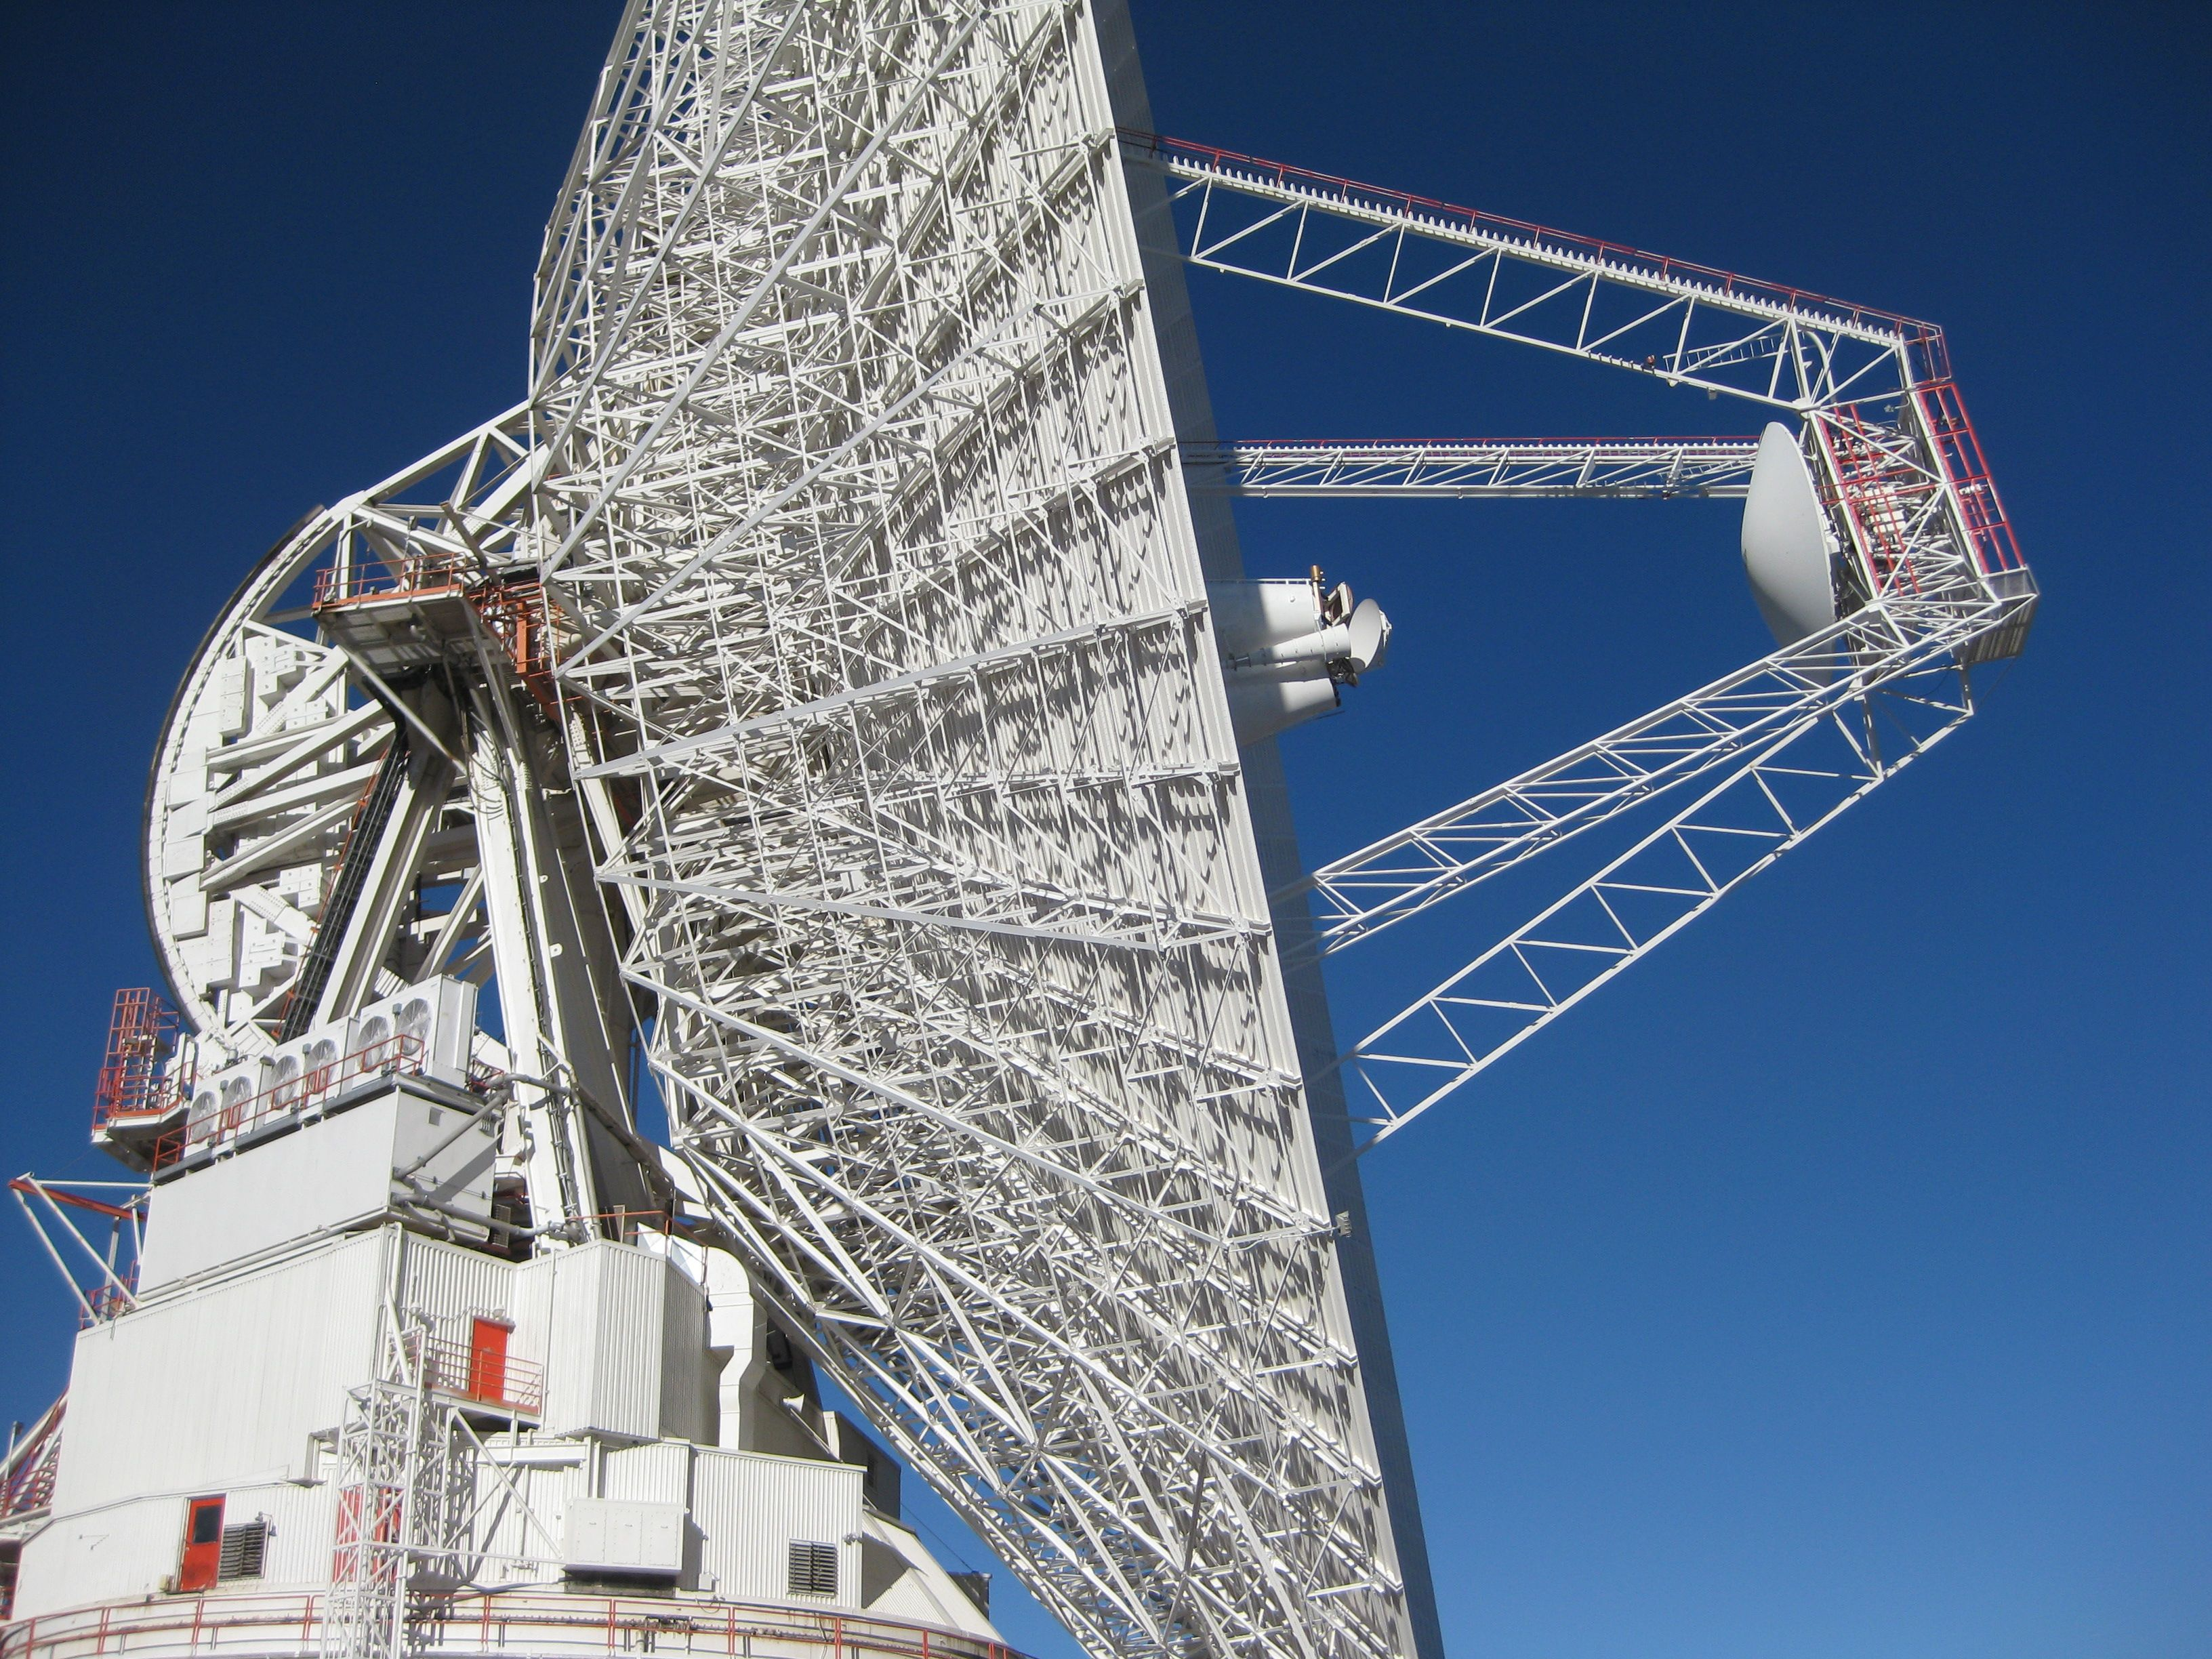 nasa satellite dish - photo #11